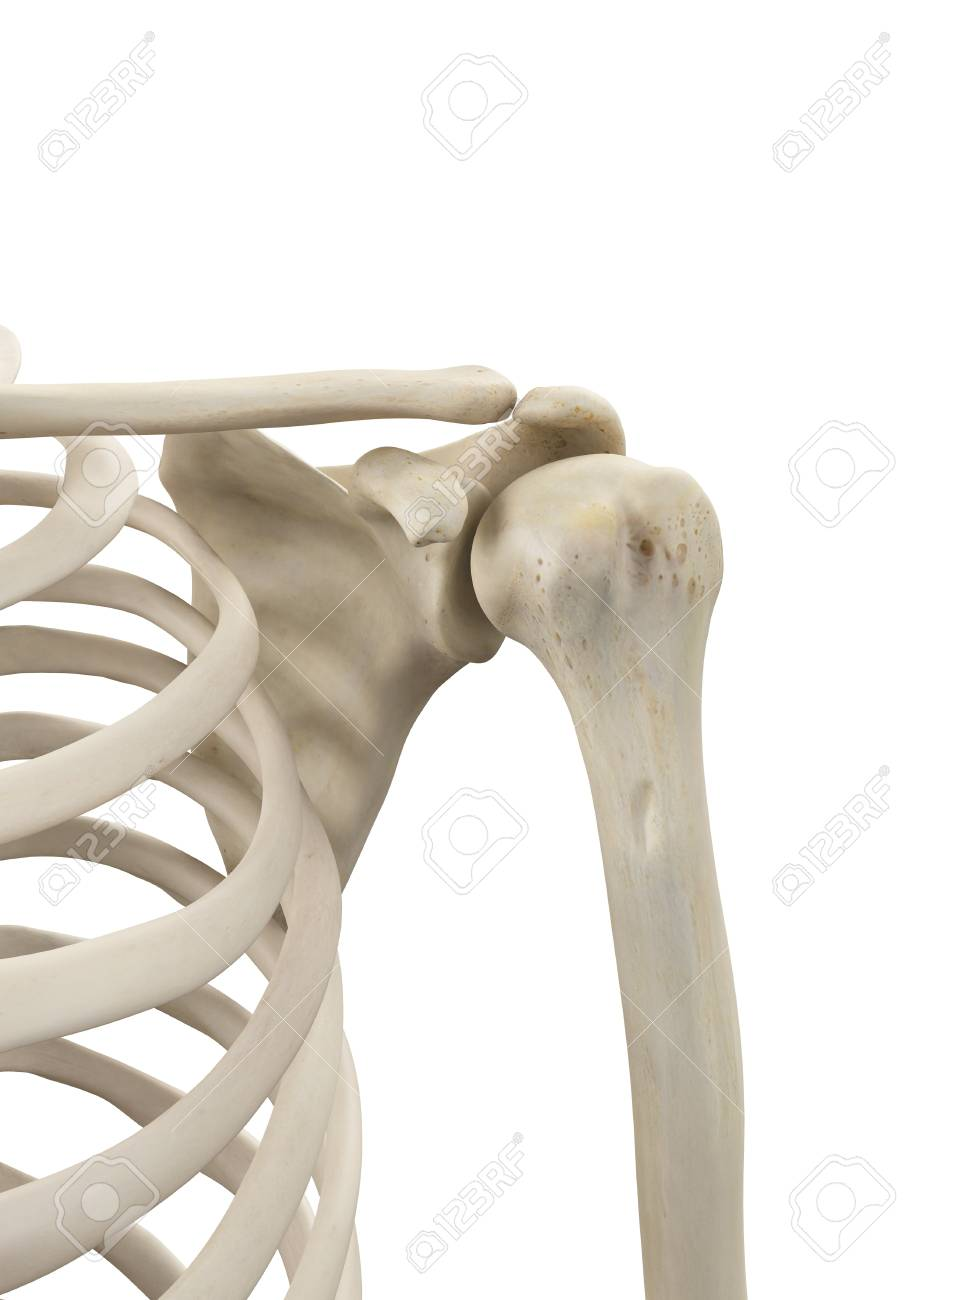 Human Shoulder Bones Artwork Stock Photo Picture And Royalty Free